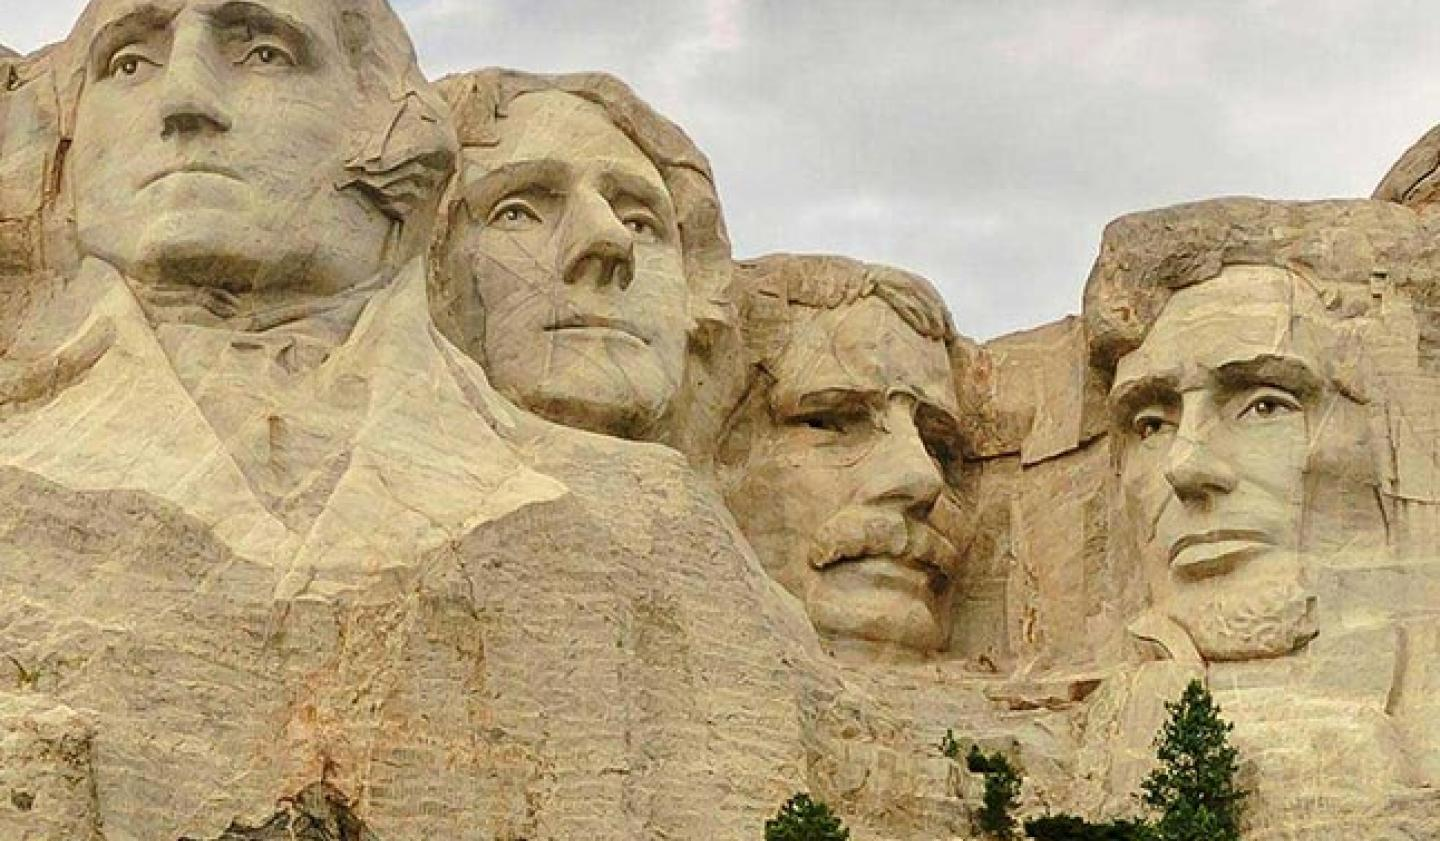 attractions - south dakota - black hills, mount rushmore, crazy horse